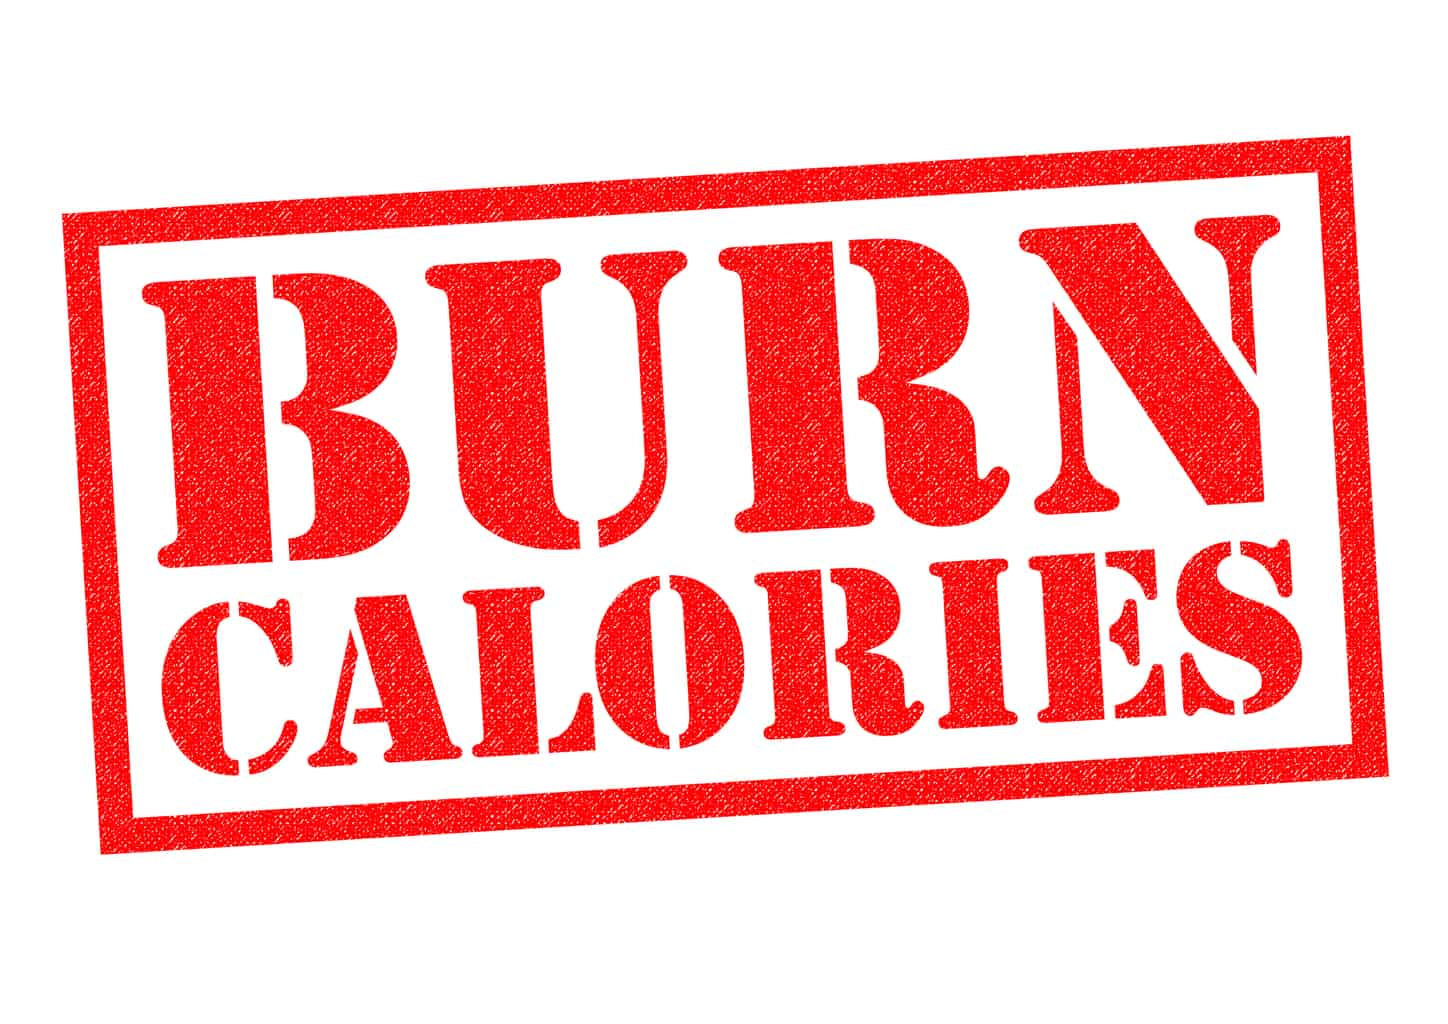 Here's how to burn 1,000 calories and not even realize it